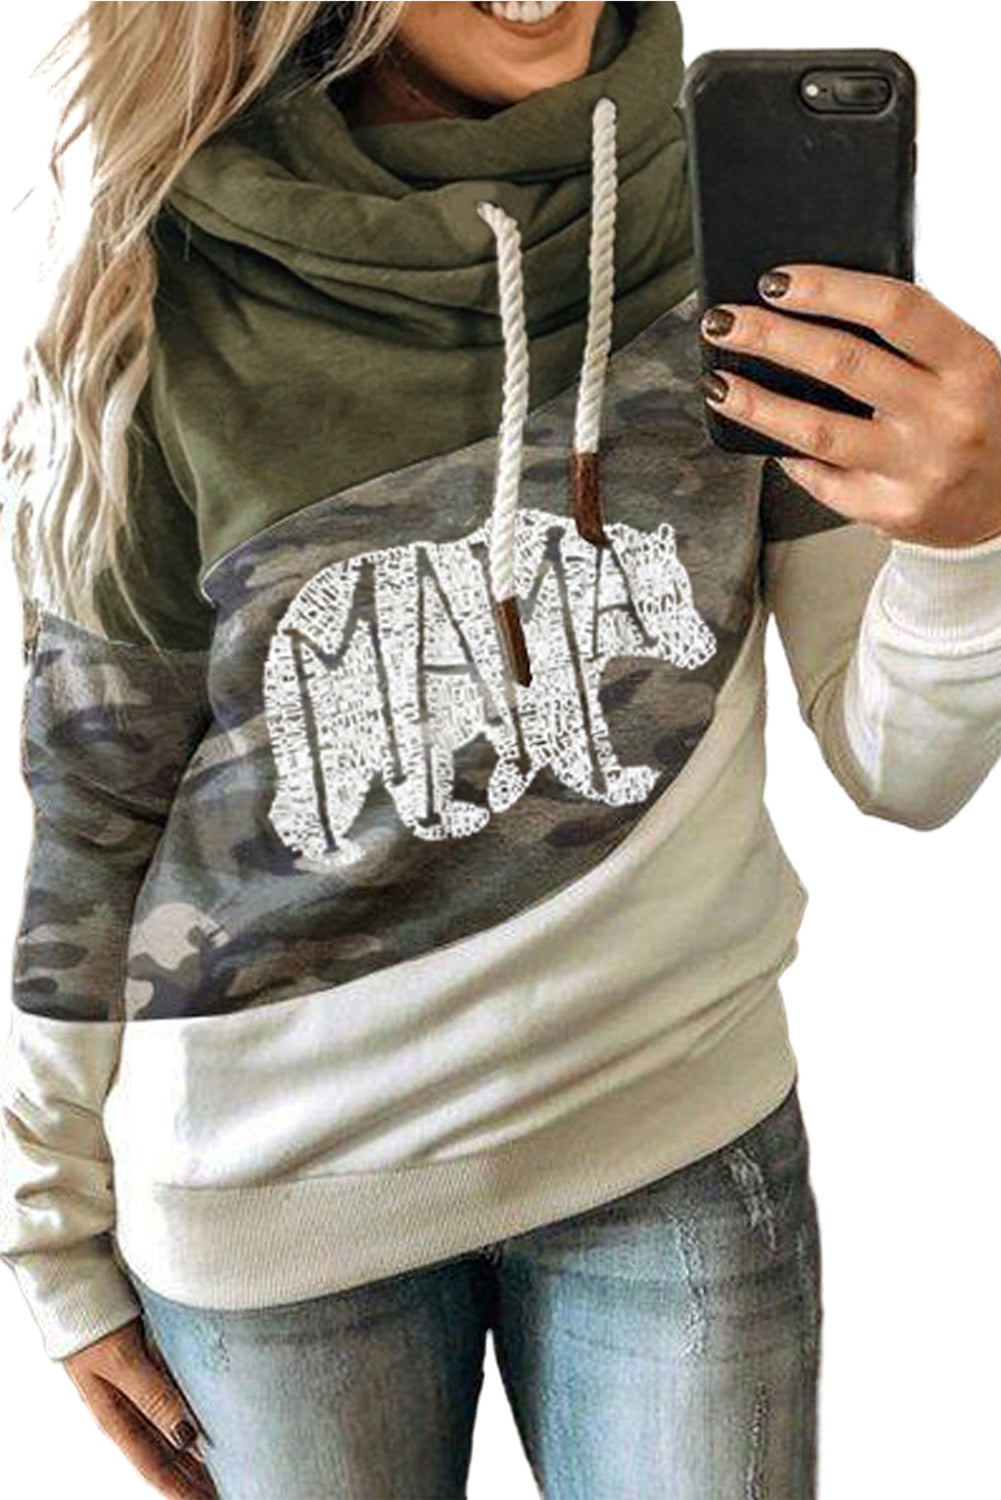 Green MAMA Camo Print Accent Colorblock Splicing Hoodie Sweatshirts & Hoodies Discount Designer Fashion Clothes Shoes Bags Women Men Kids Children Black Owned Business